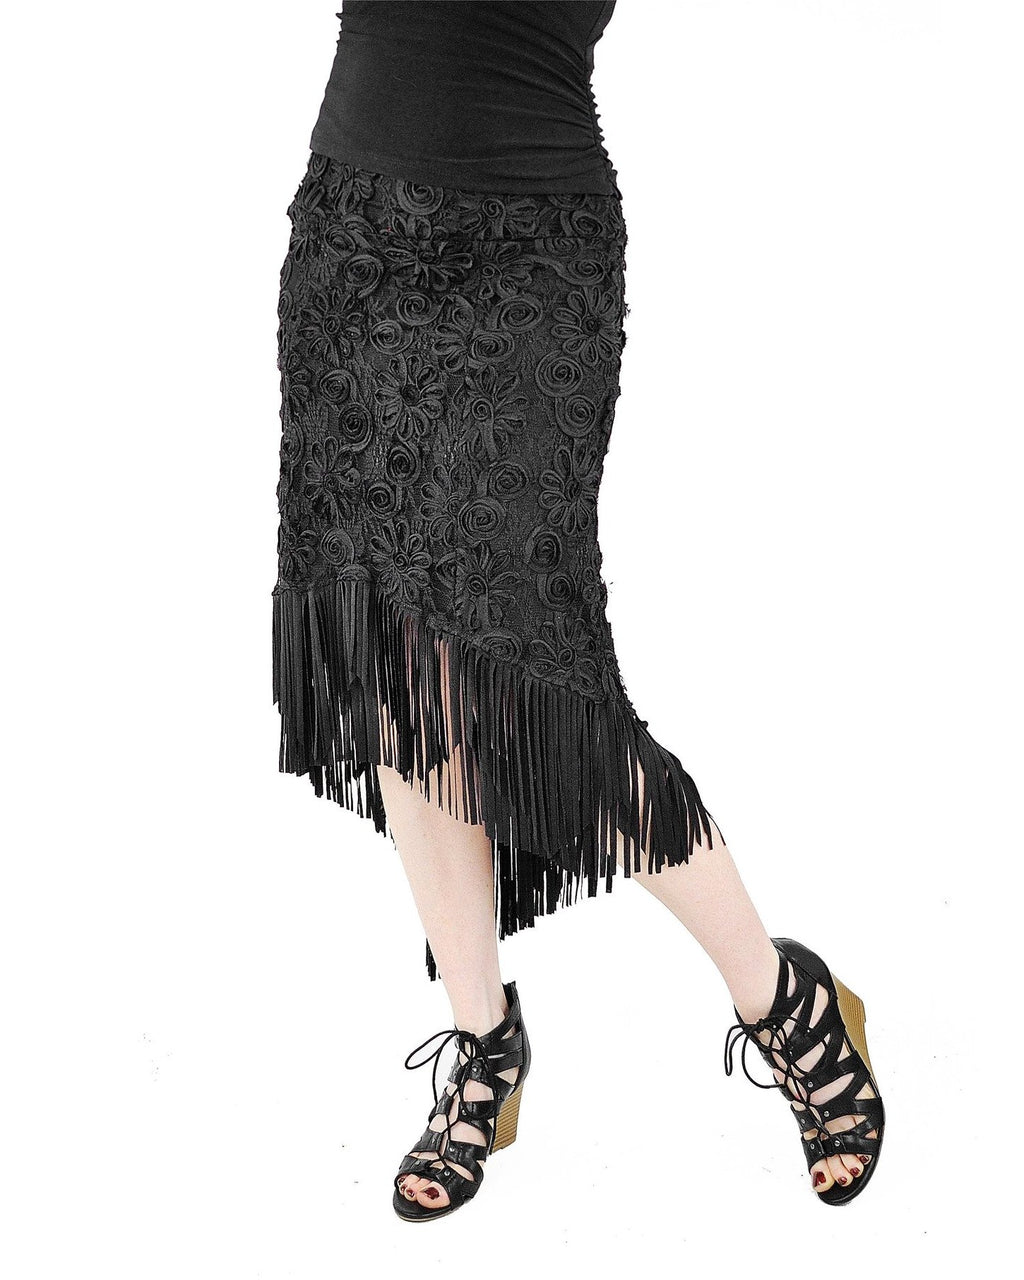 Mimi Fringe Skirt - Black